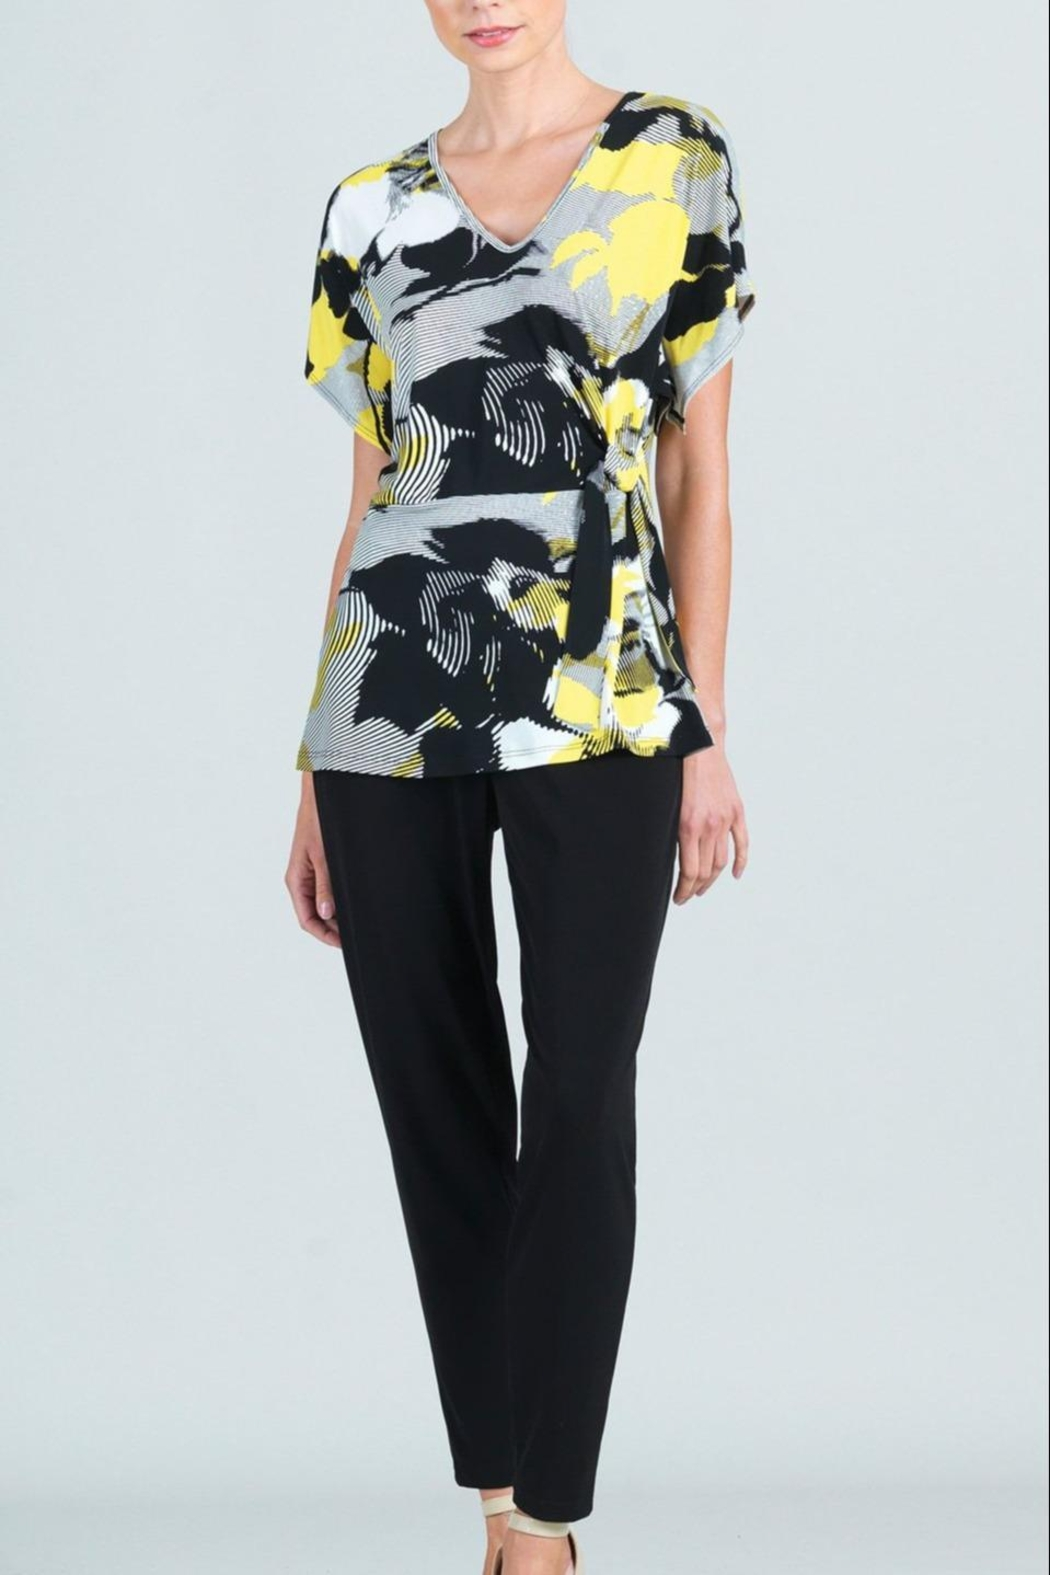 Clara Sunwoo Abstract-Floral Side-Tie Knit-Tunic - Main Image